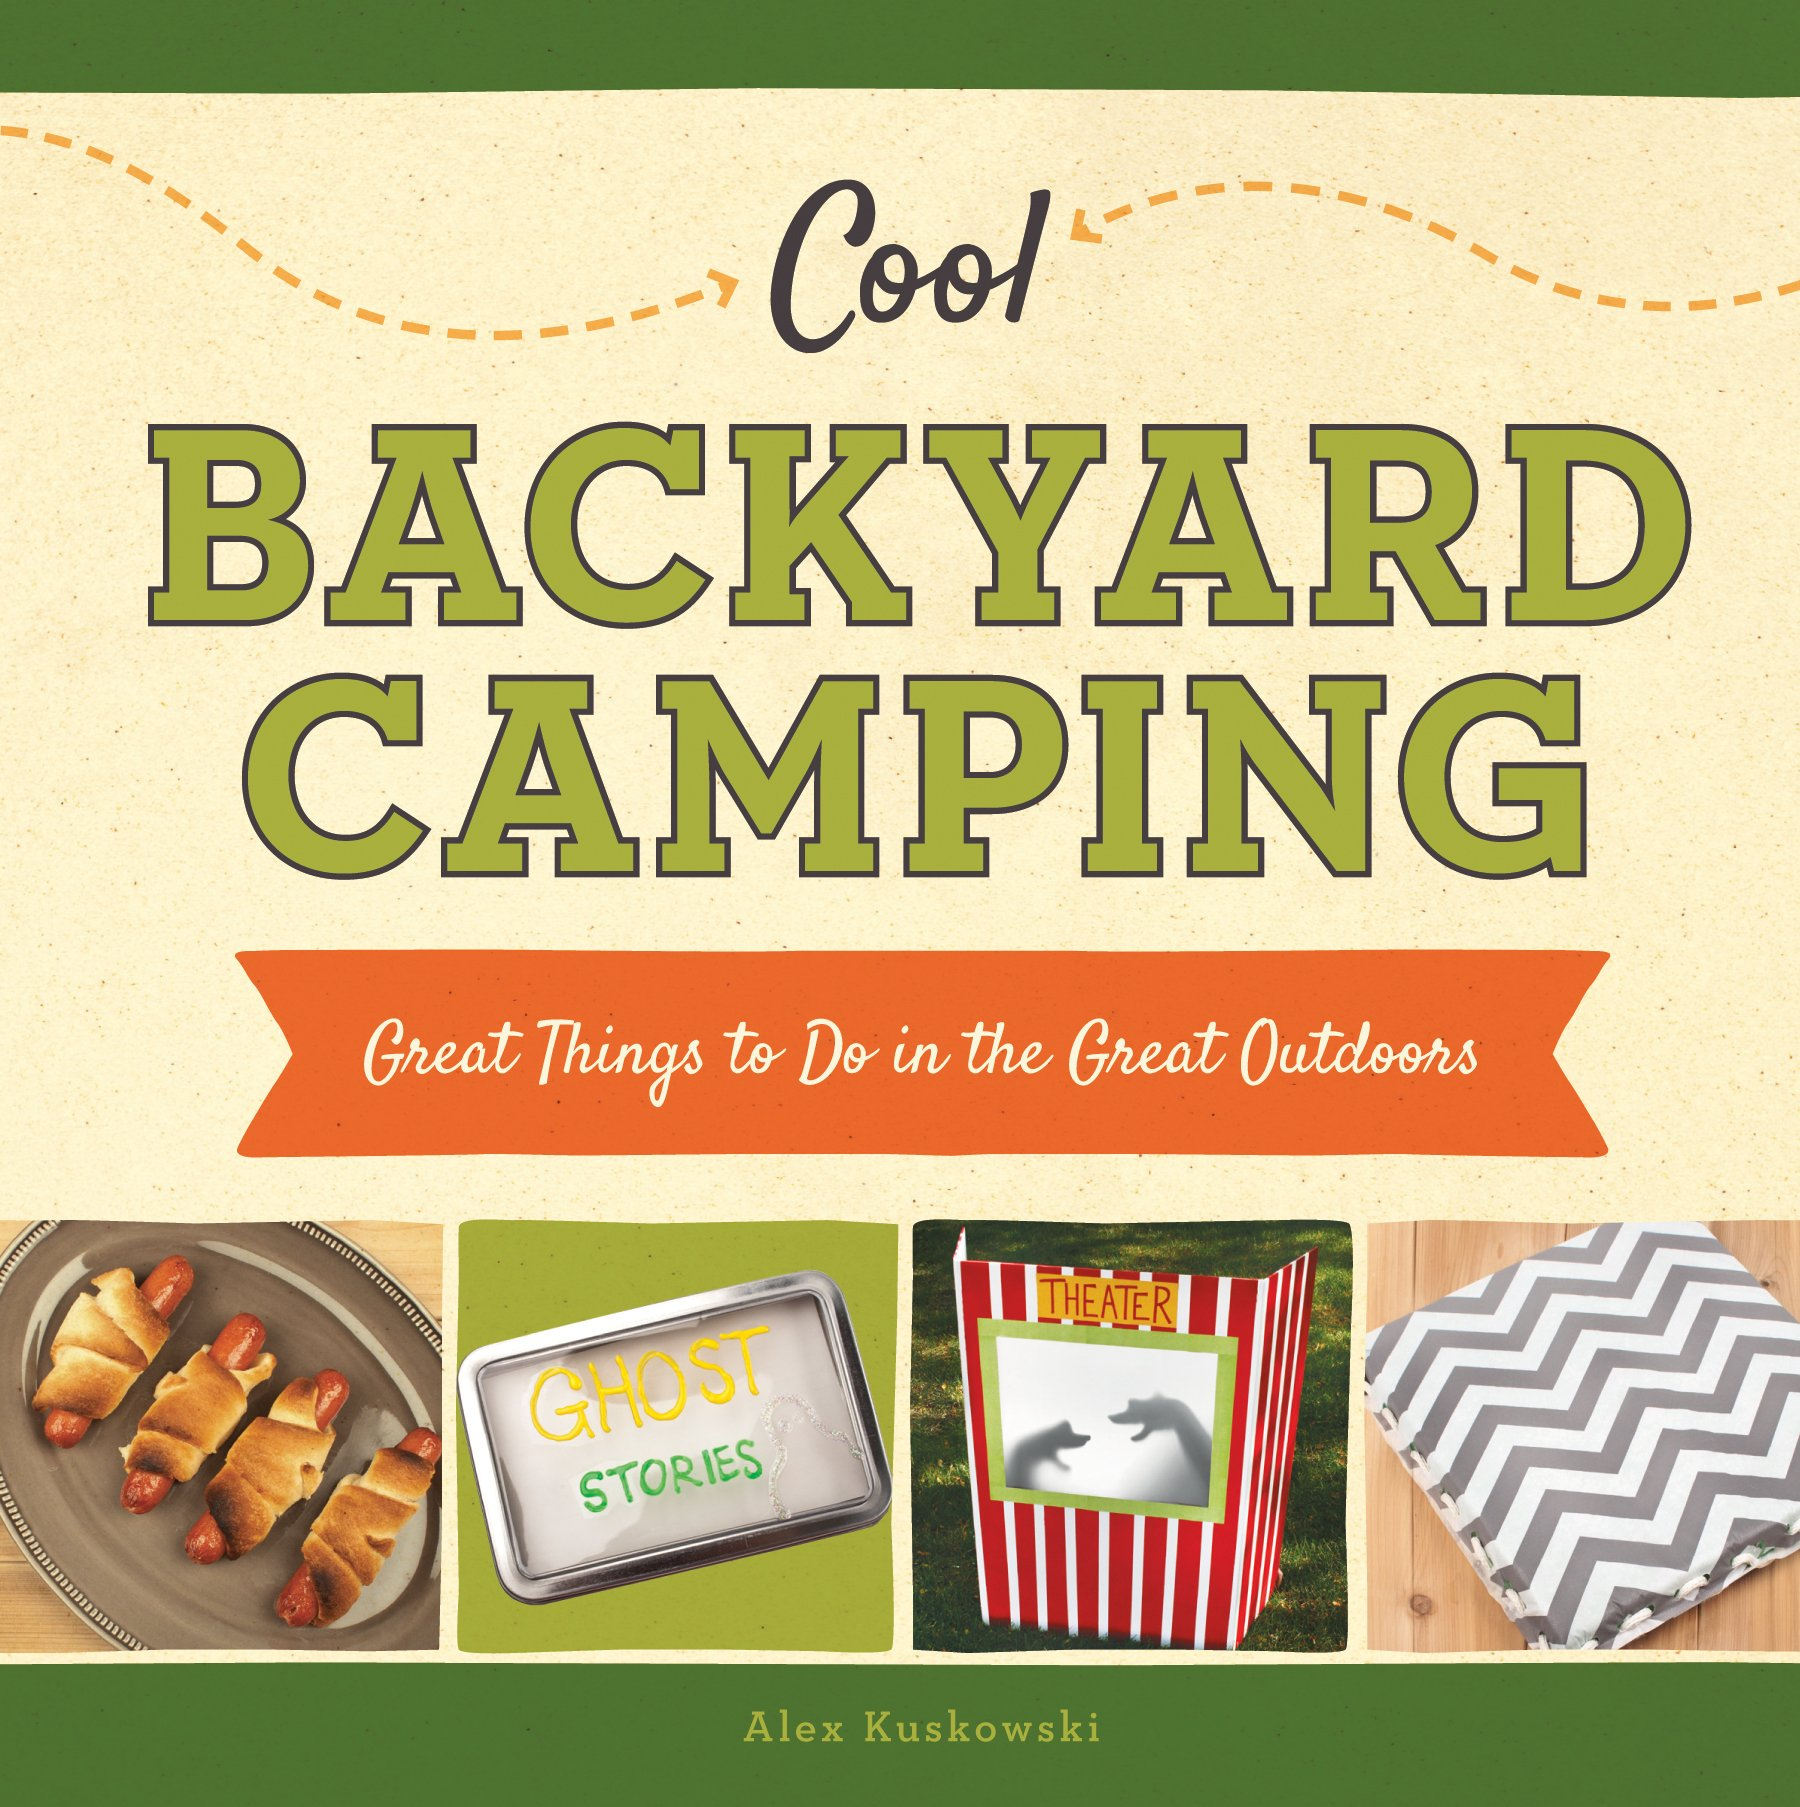 Download Cool Backyard Camping: Great Things to Do in the Great Outdoors (Cool Great Outdoors) PDF